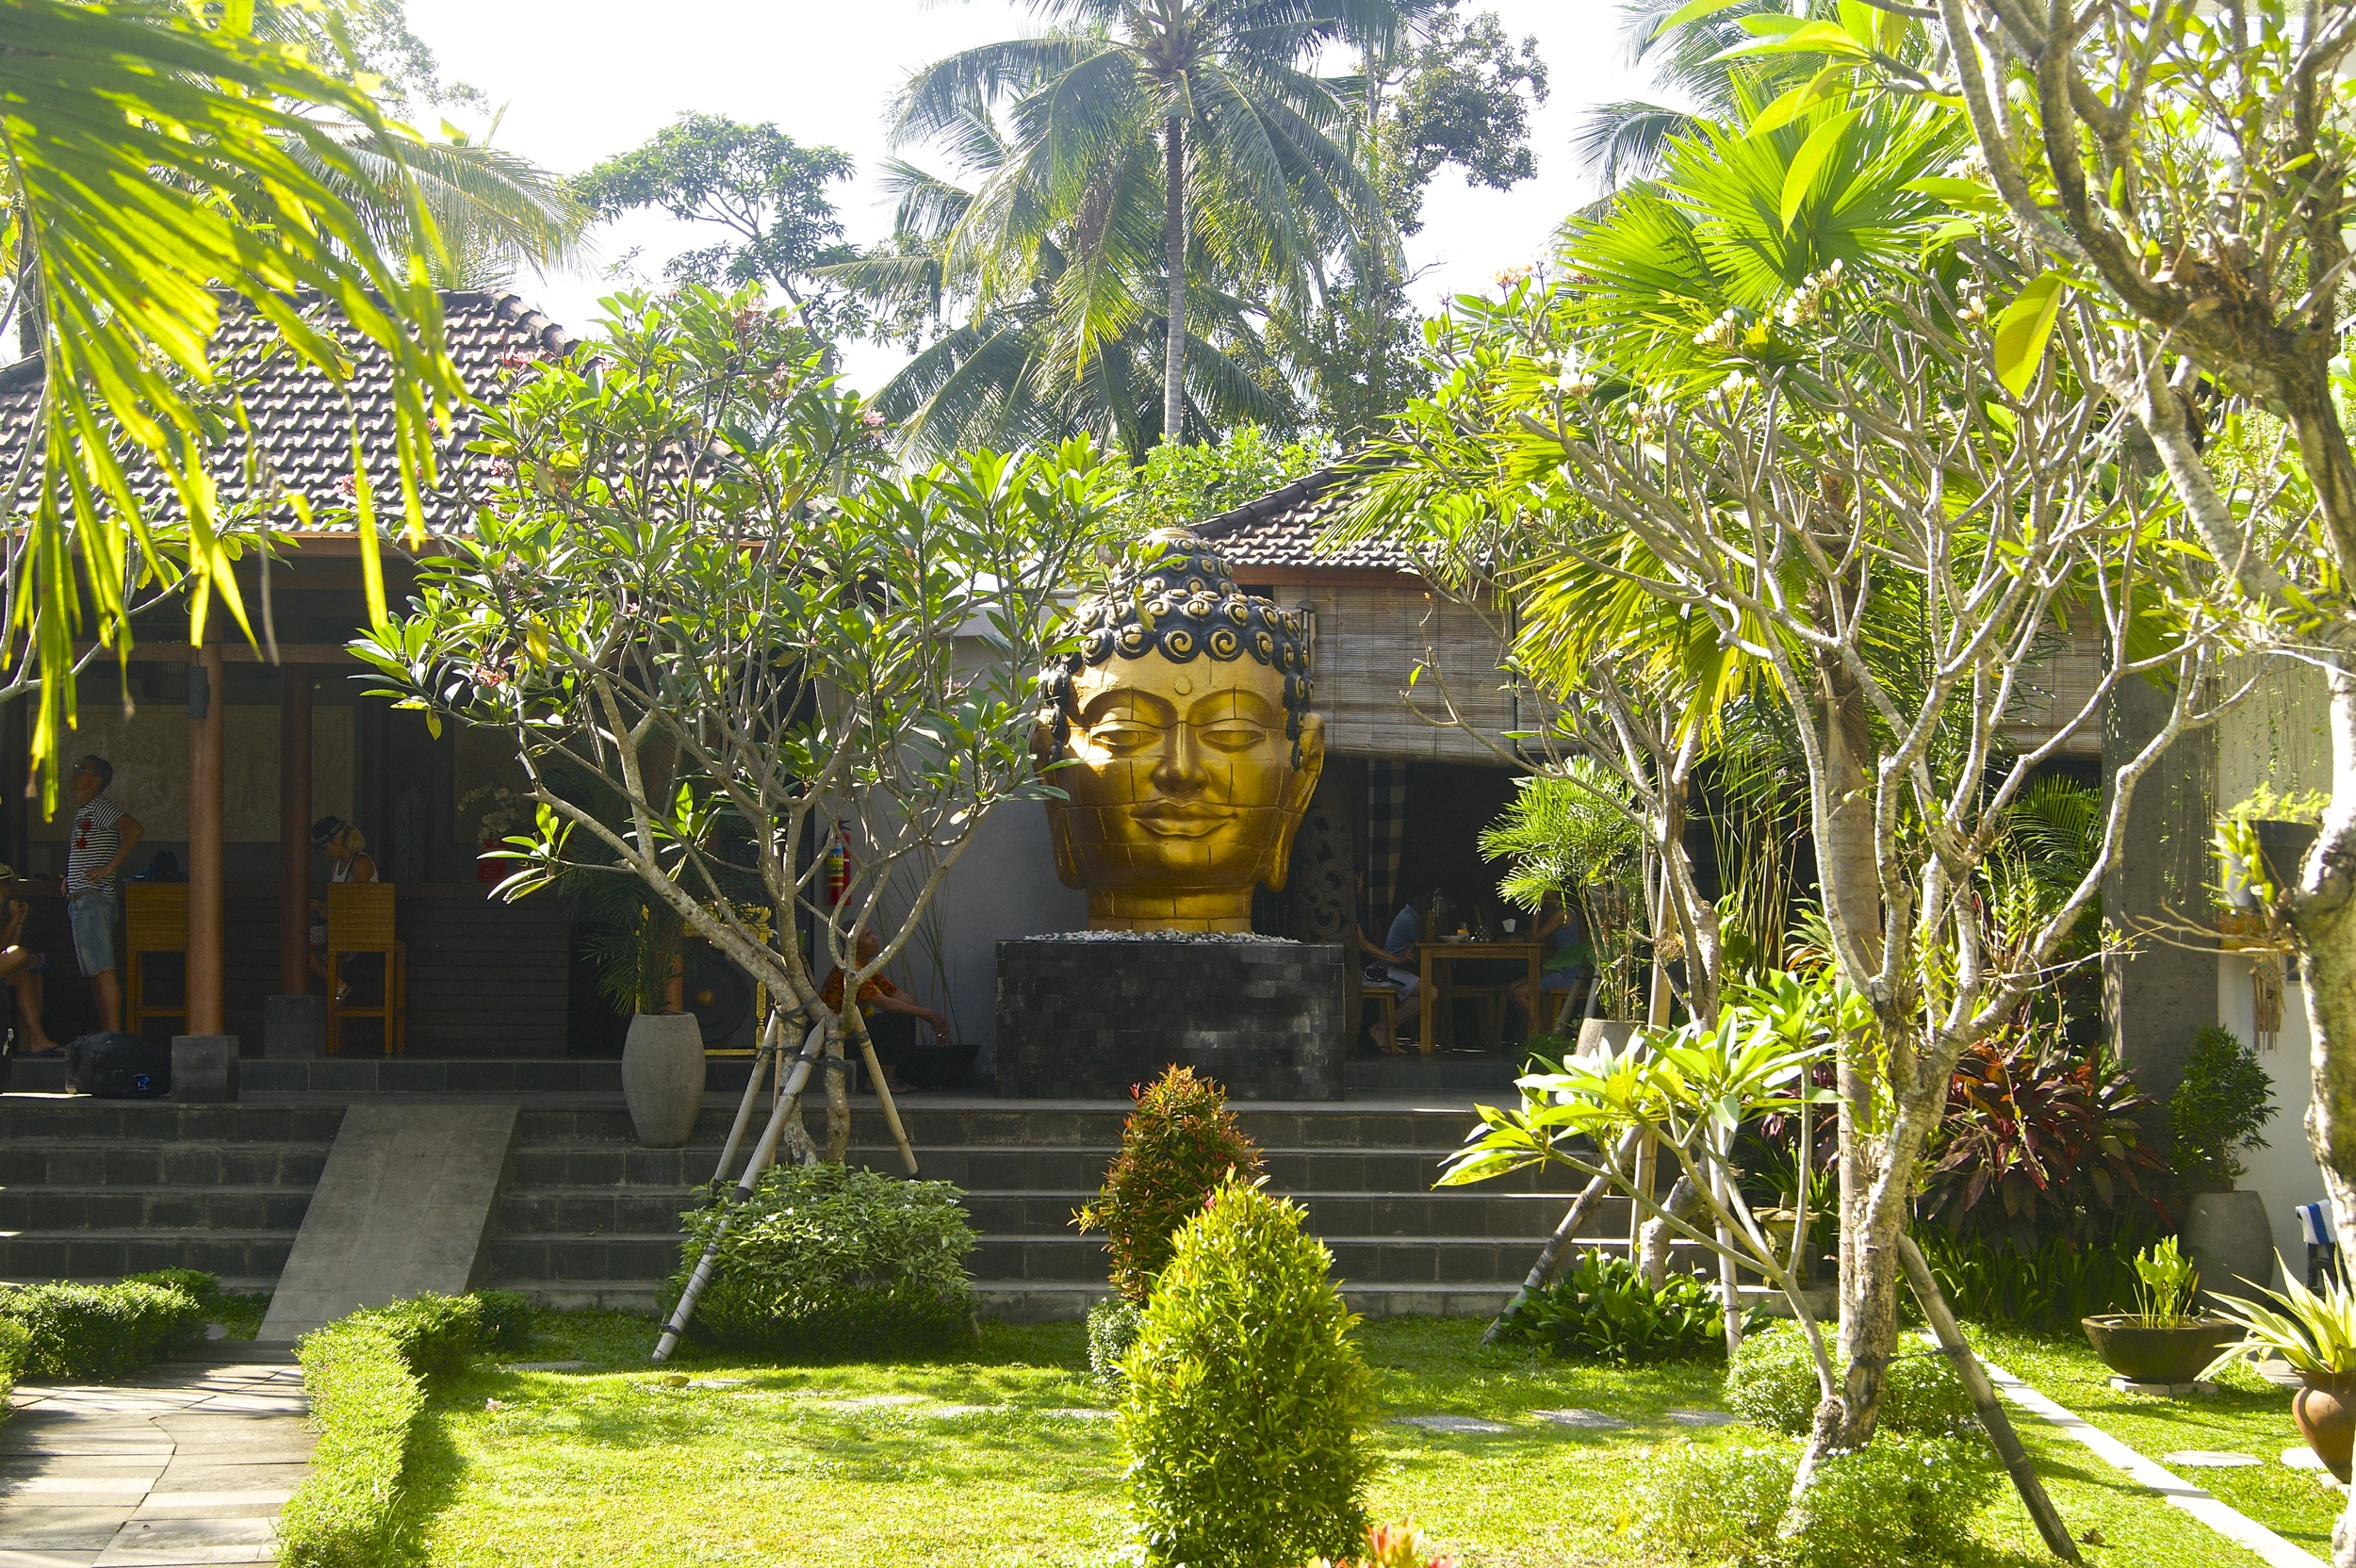 Ubud Raya Hotel - Swimming Pool and Garden - Ubud, Bali - Hotel Review - illumelation.com